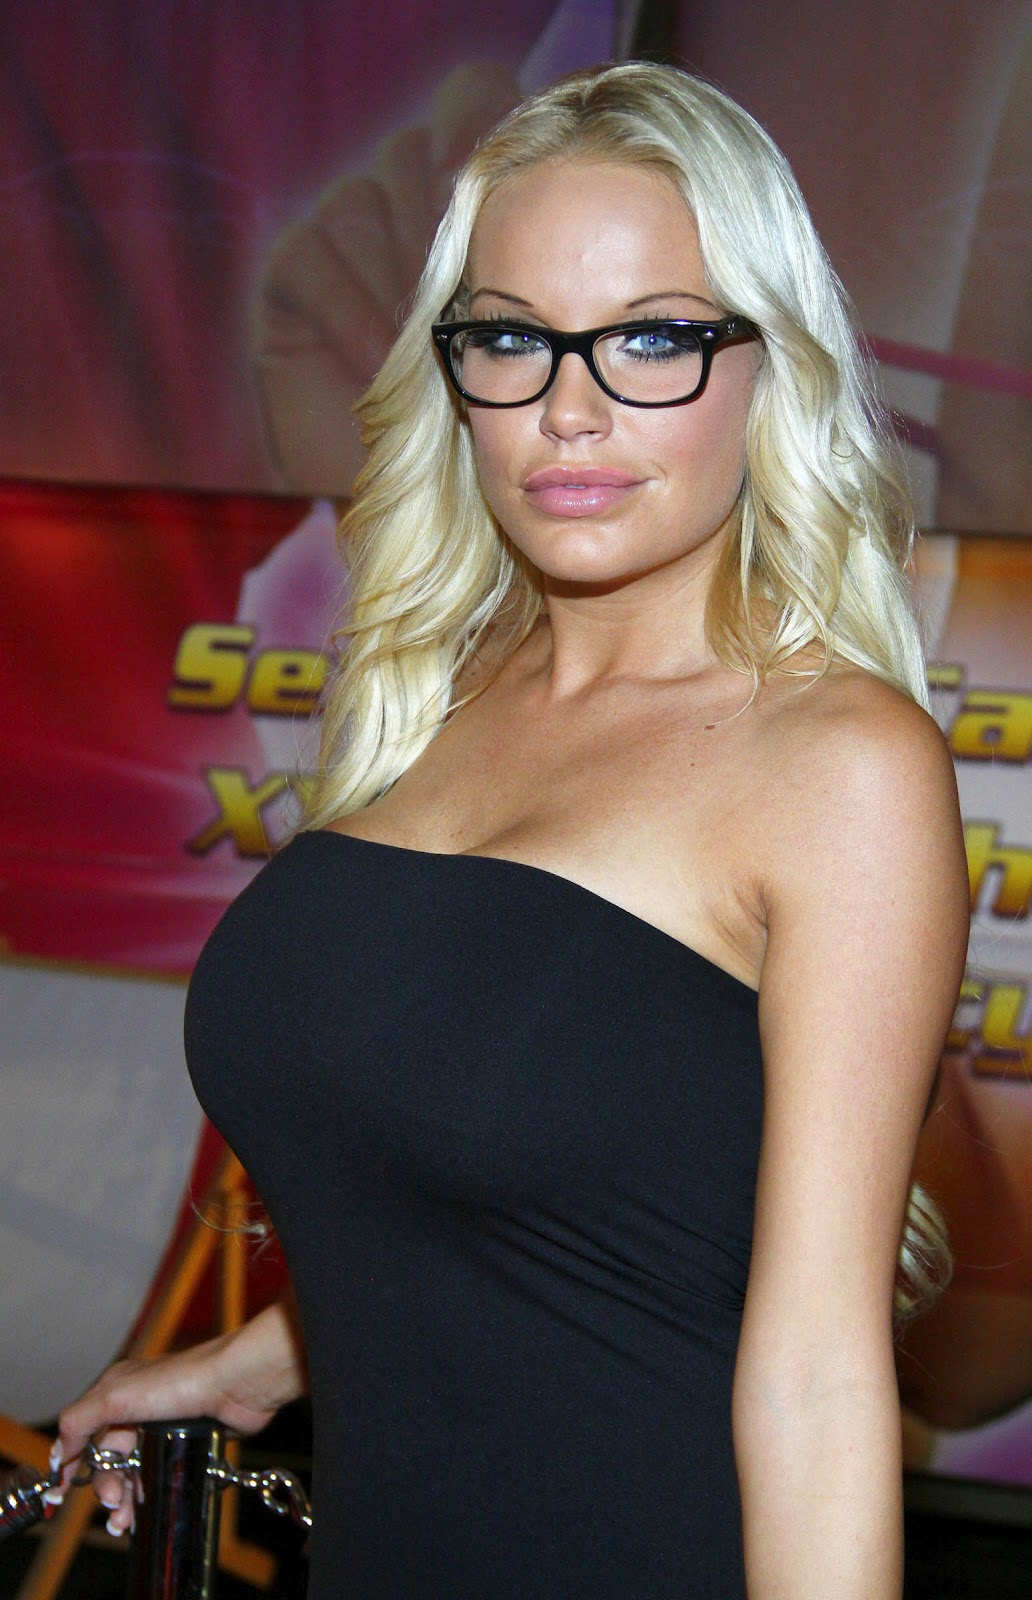 Best Cleavages in The World: Micaela Schaefer Cleavage